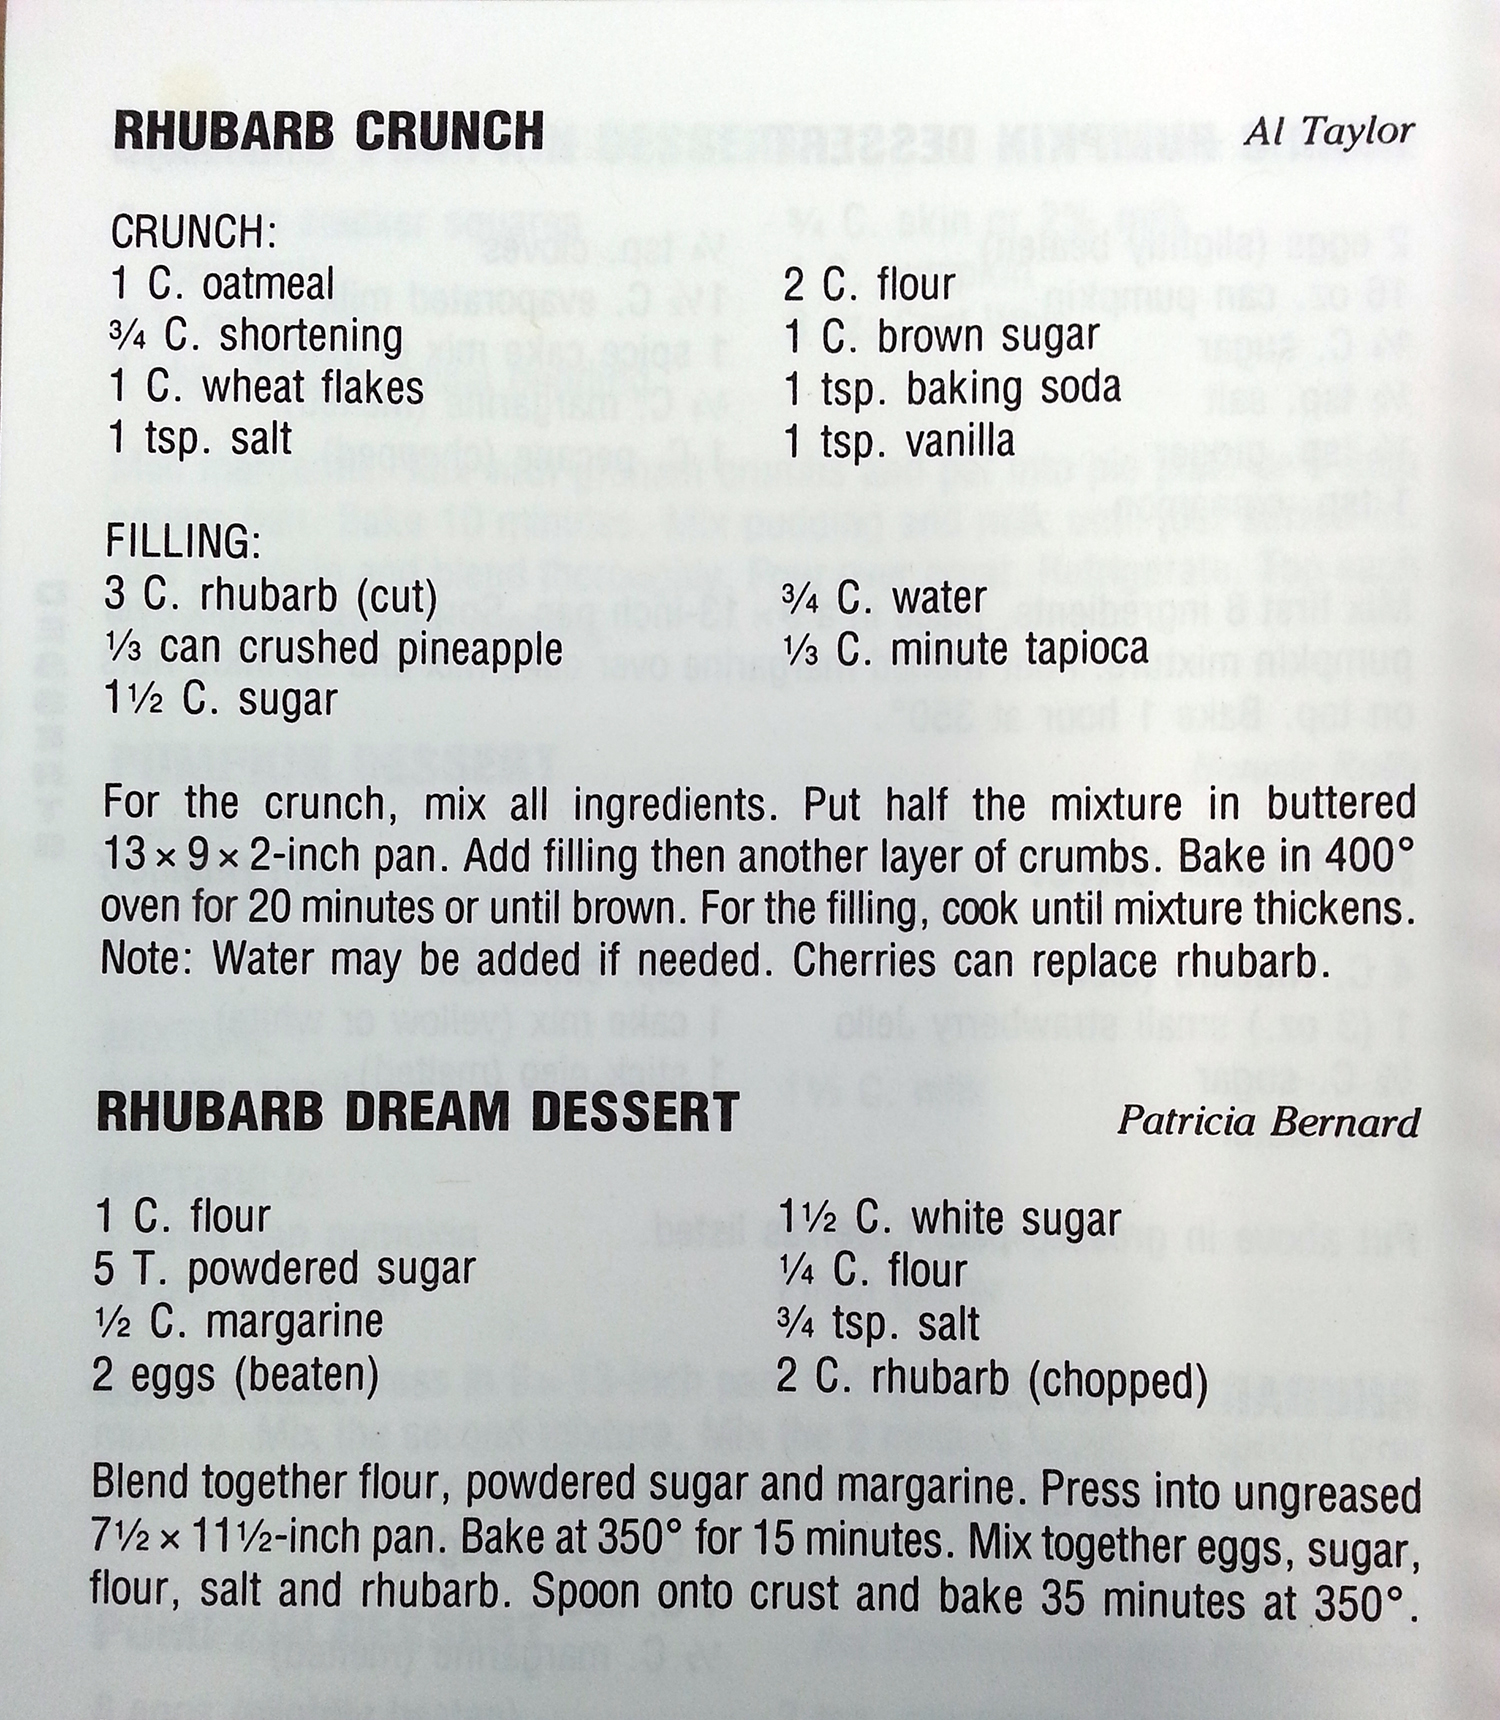 Rhubarb recipe